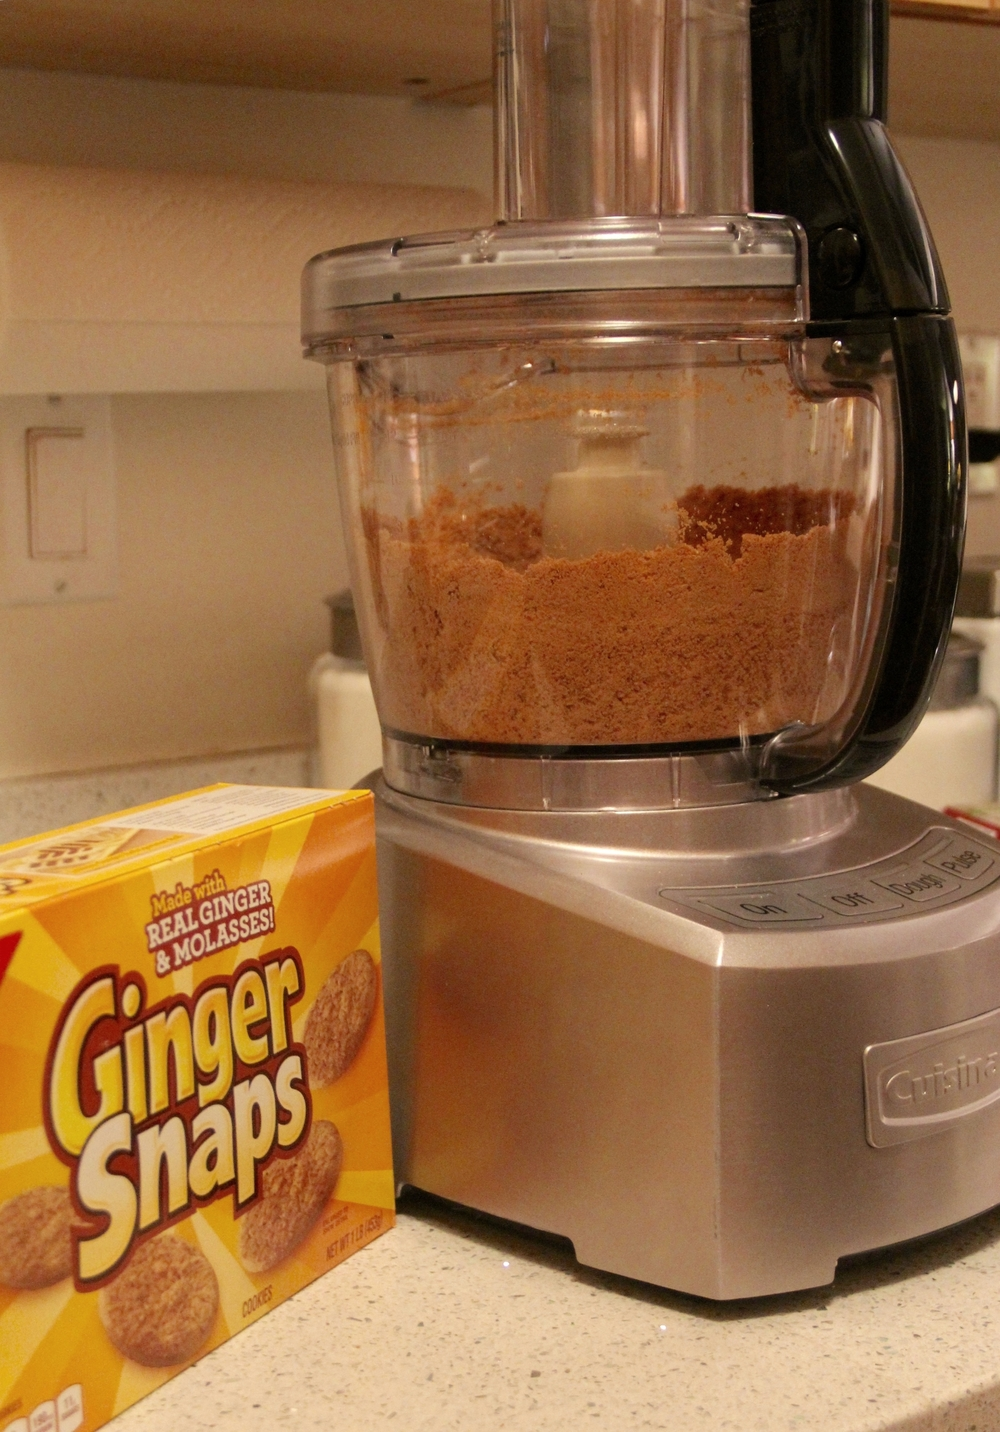 Gingersnaps Food Processor.jpg